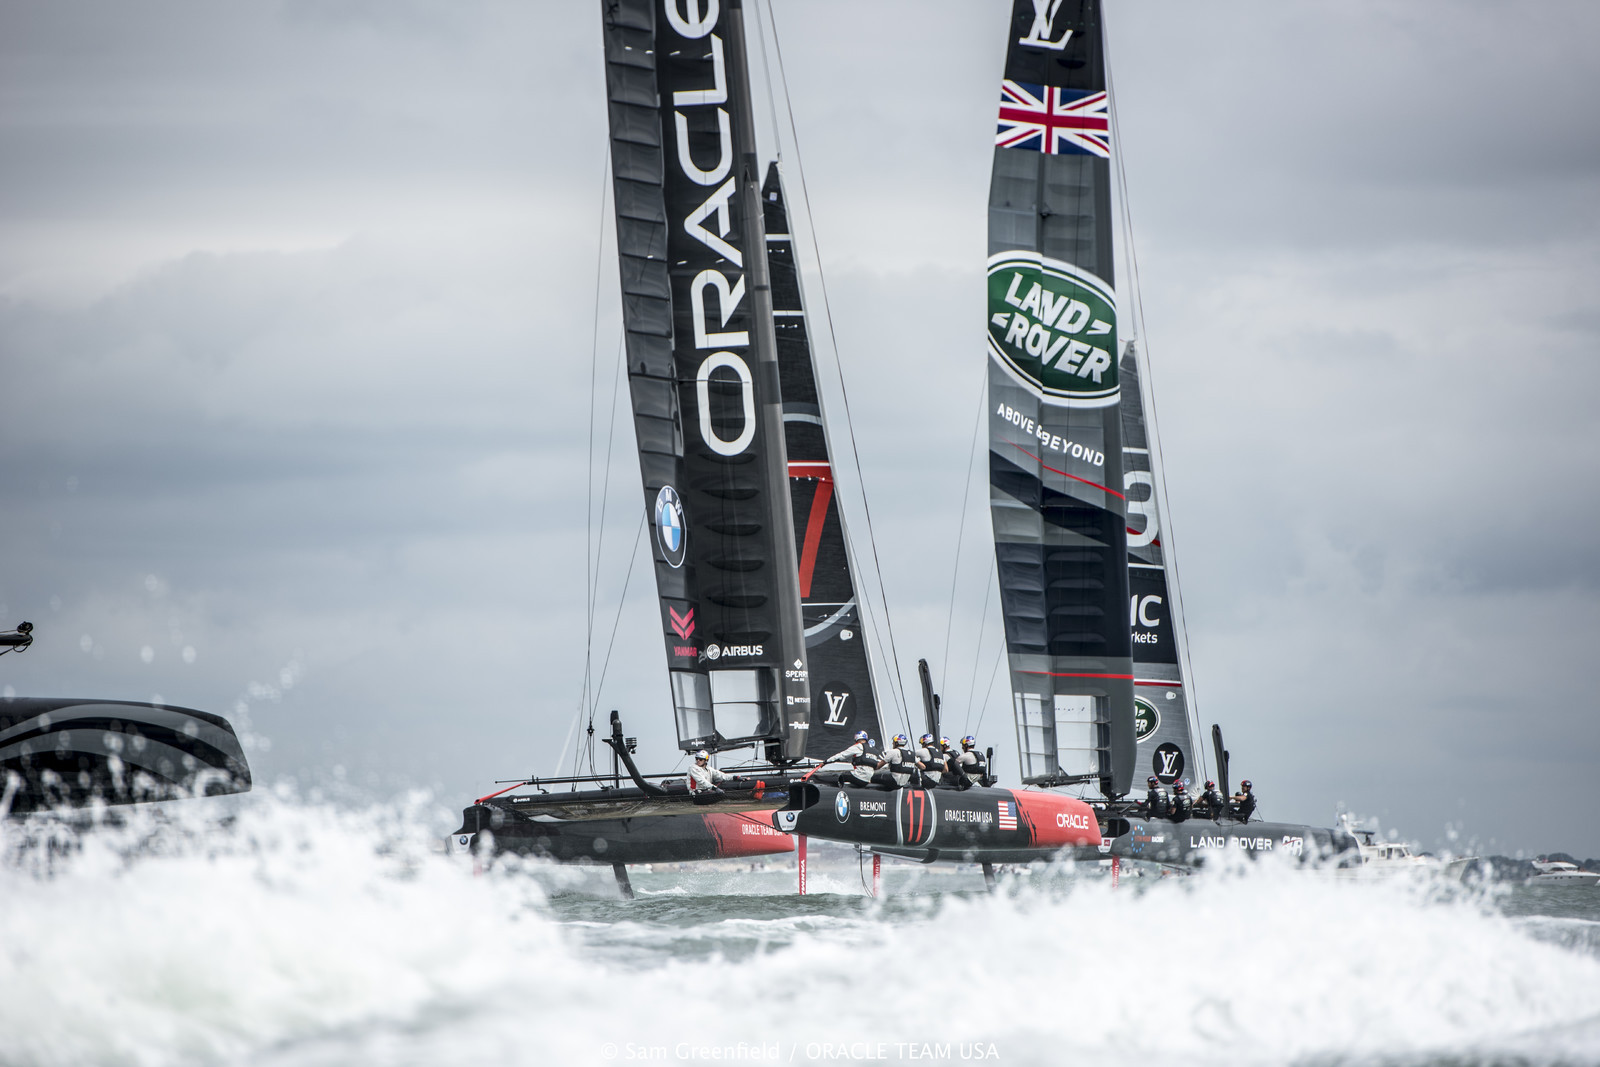 2016 Portsmouth America's Cup World SeriesSuper Sunday Race Day at Louis Vuitton America's Cup World Series Chicago